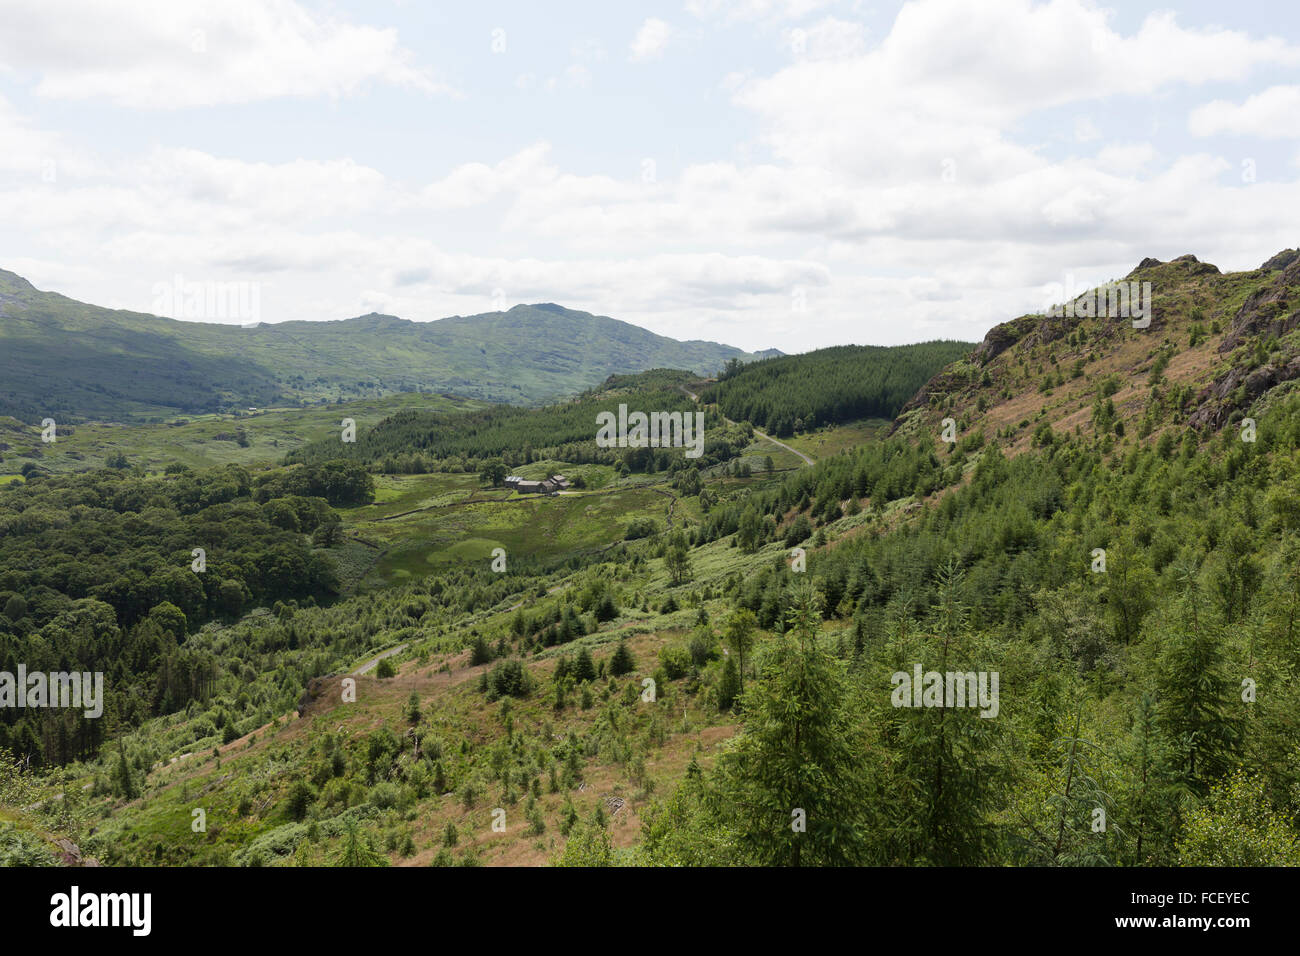 Forestry plantation in Dunnerdale, Lake District - Stock Image